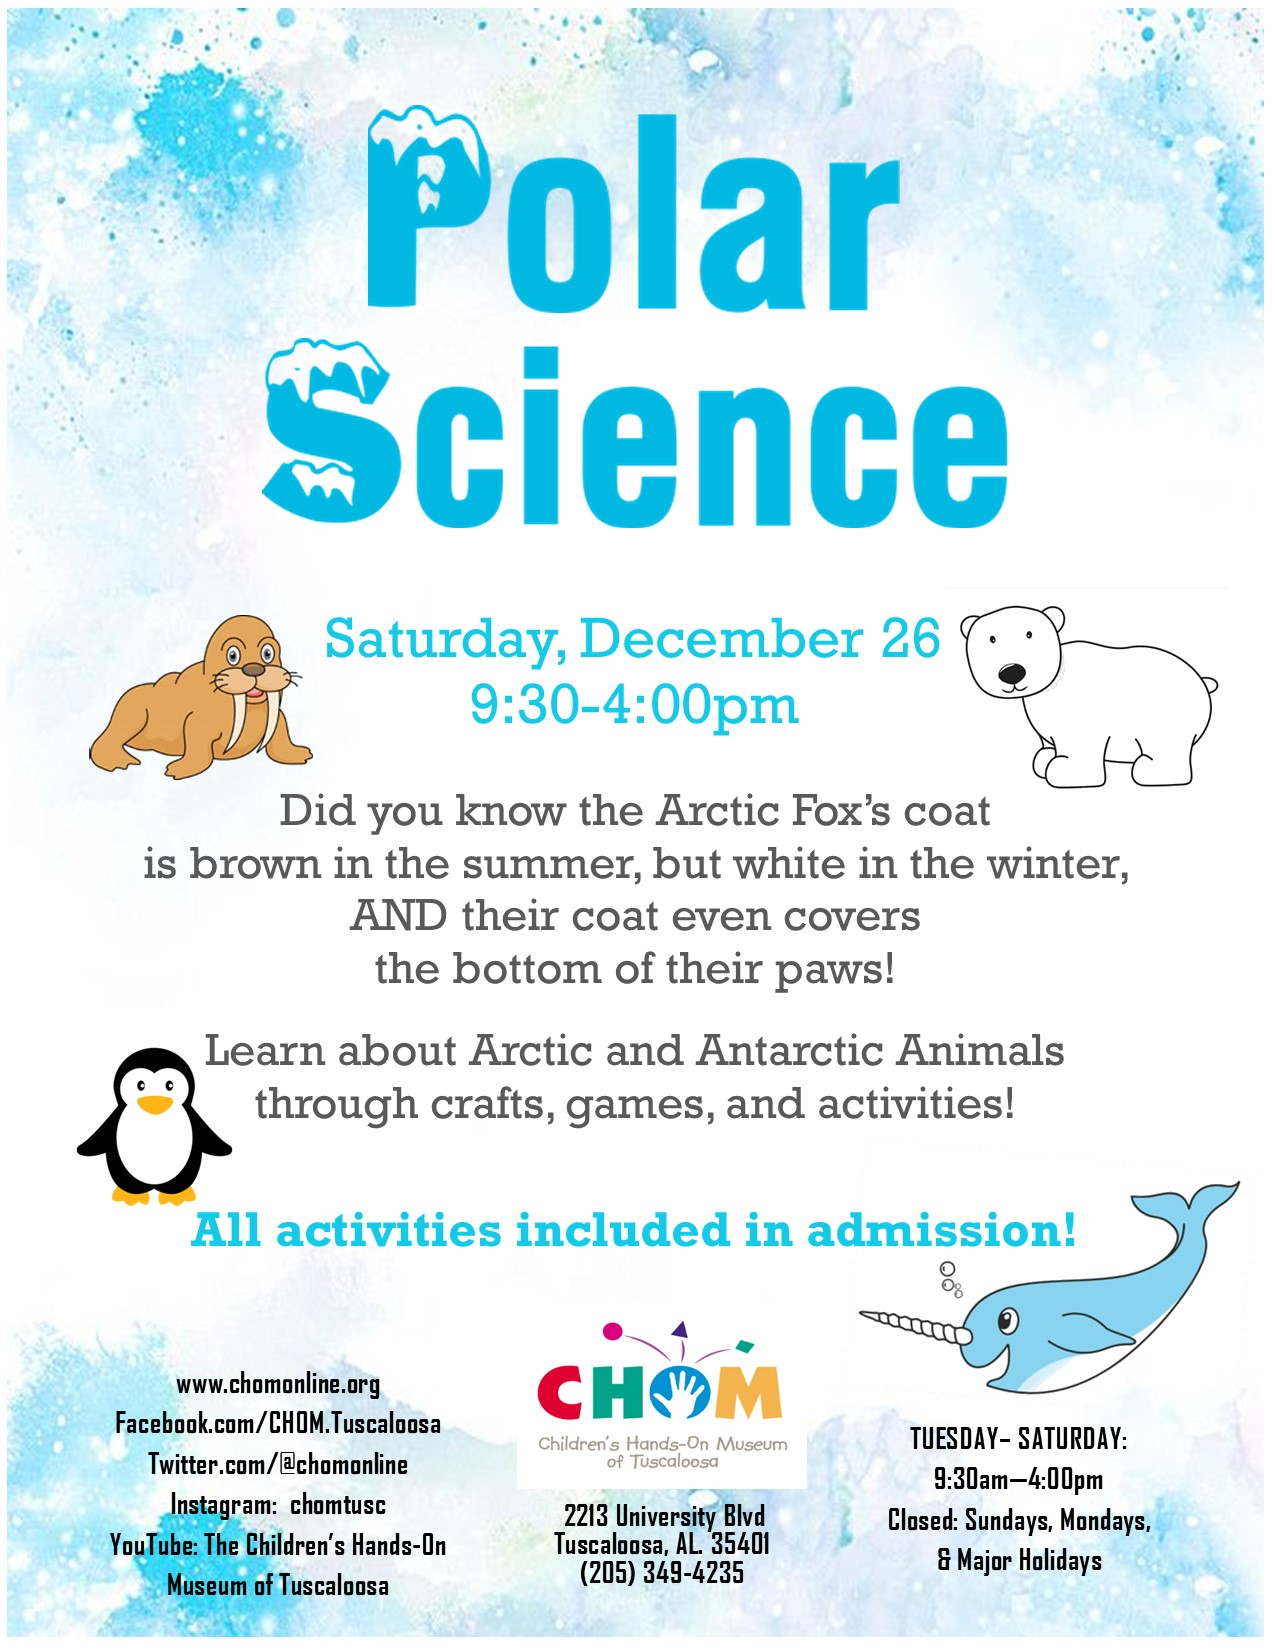 Polar Science at CHOM!